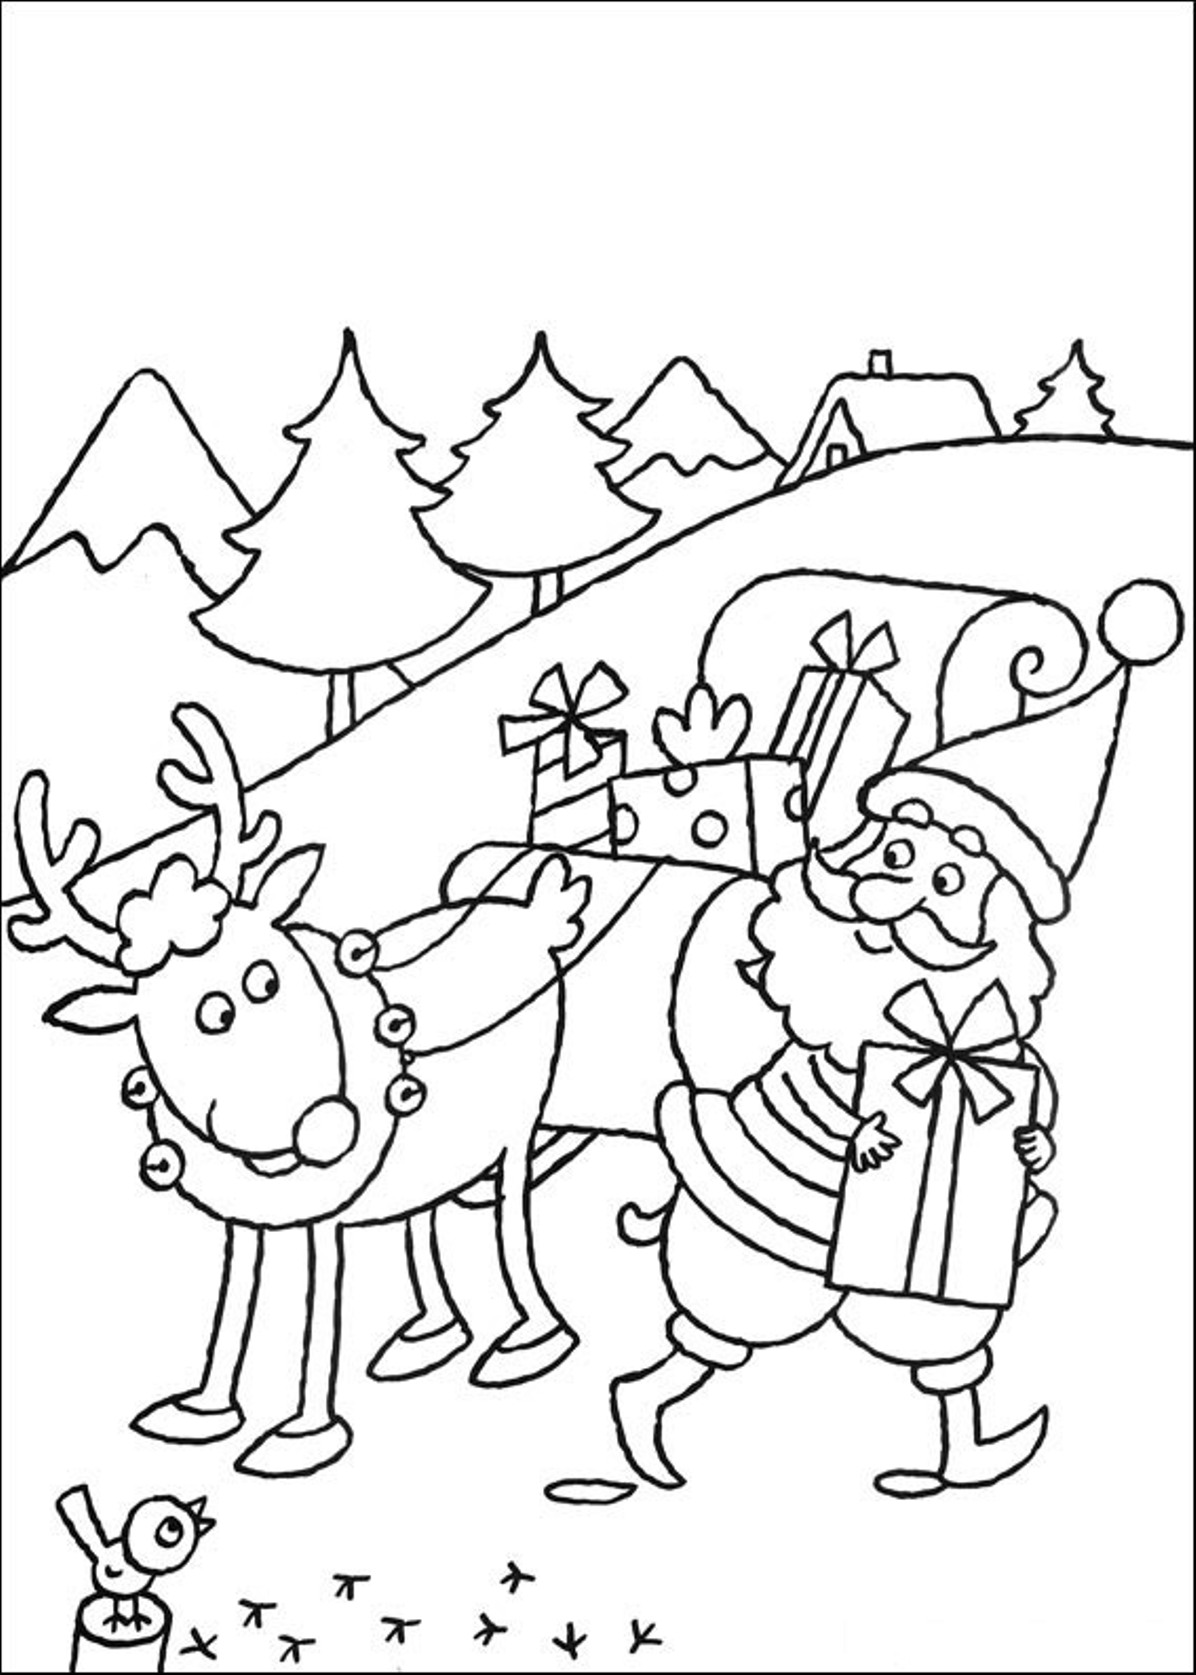 Christmas reindeer head coloring pages for Santa with reindeer coloring pages